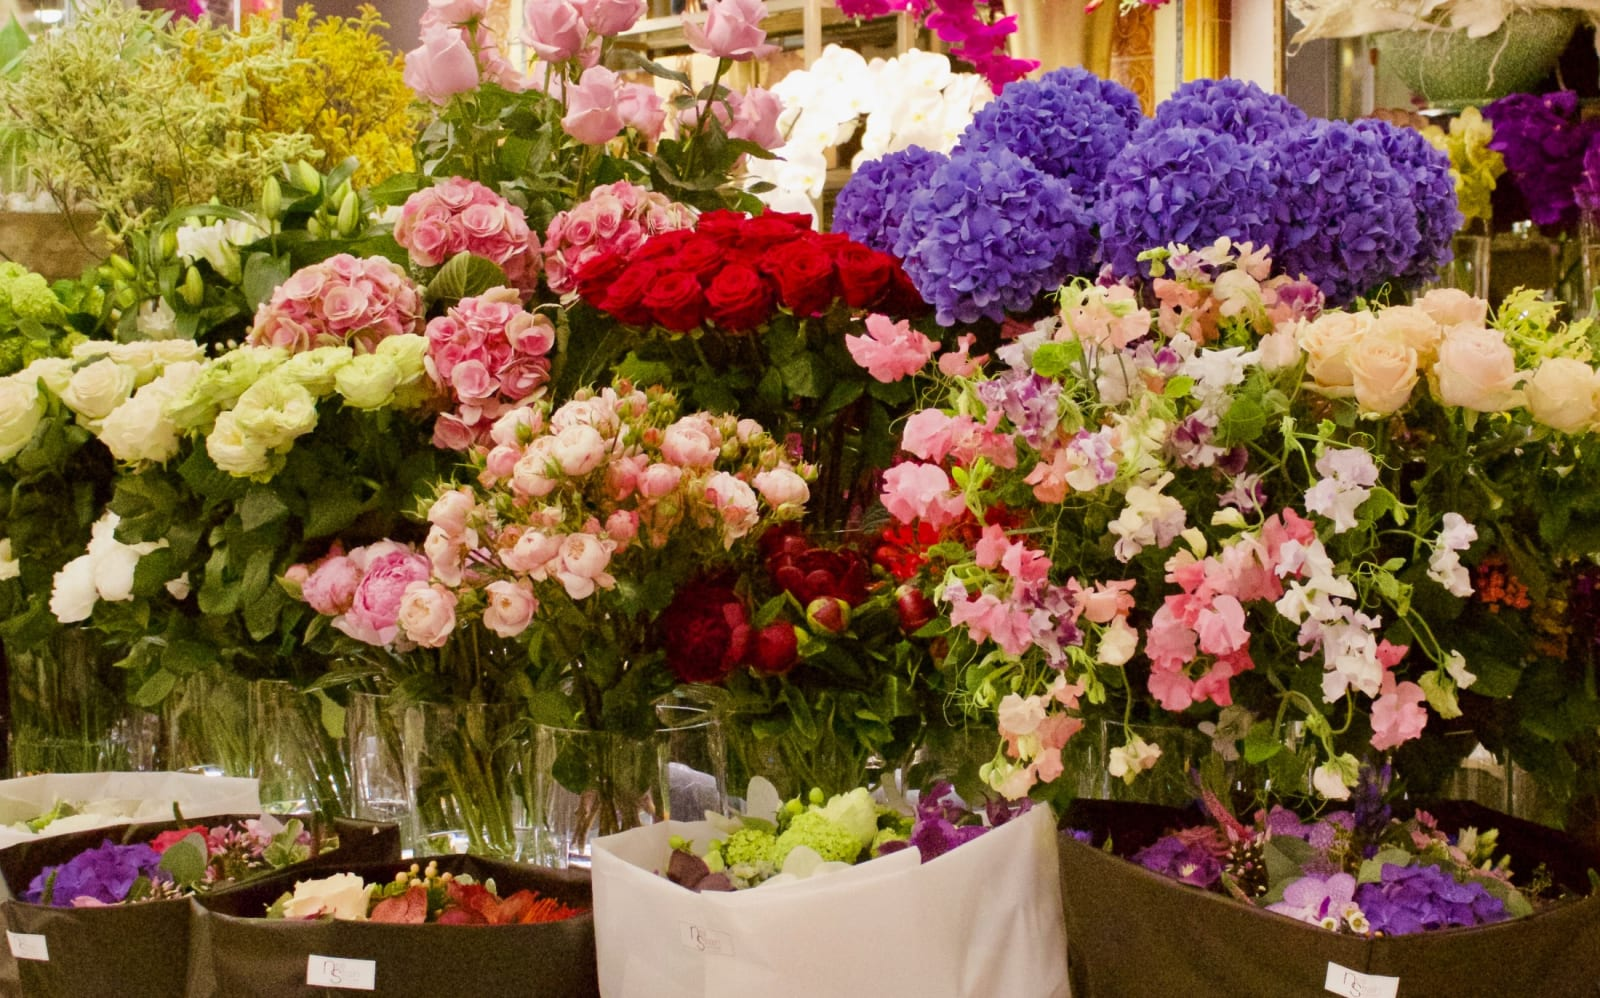 A colourful assortment of flowers at Harrods in London.